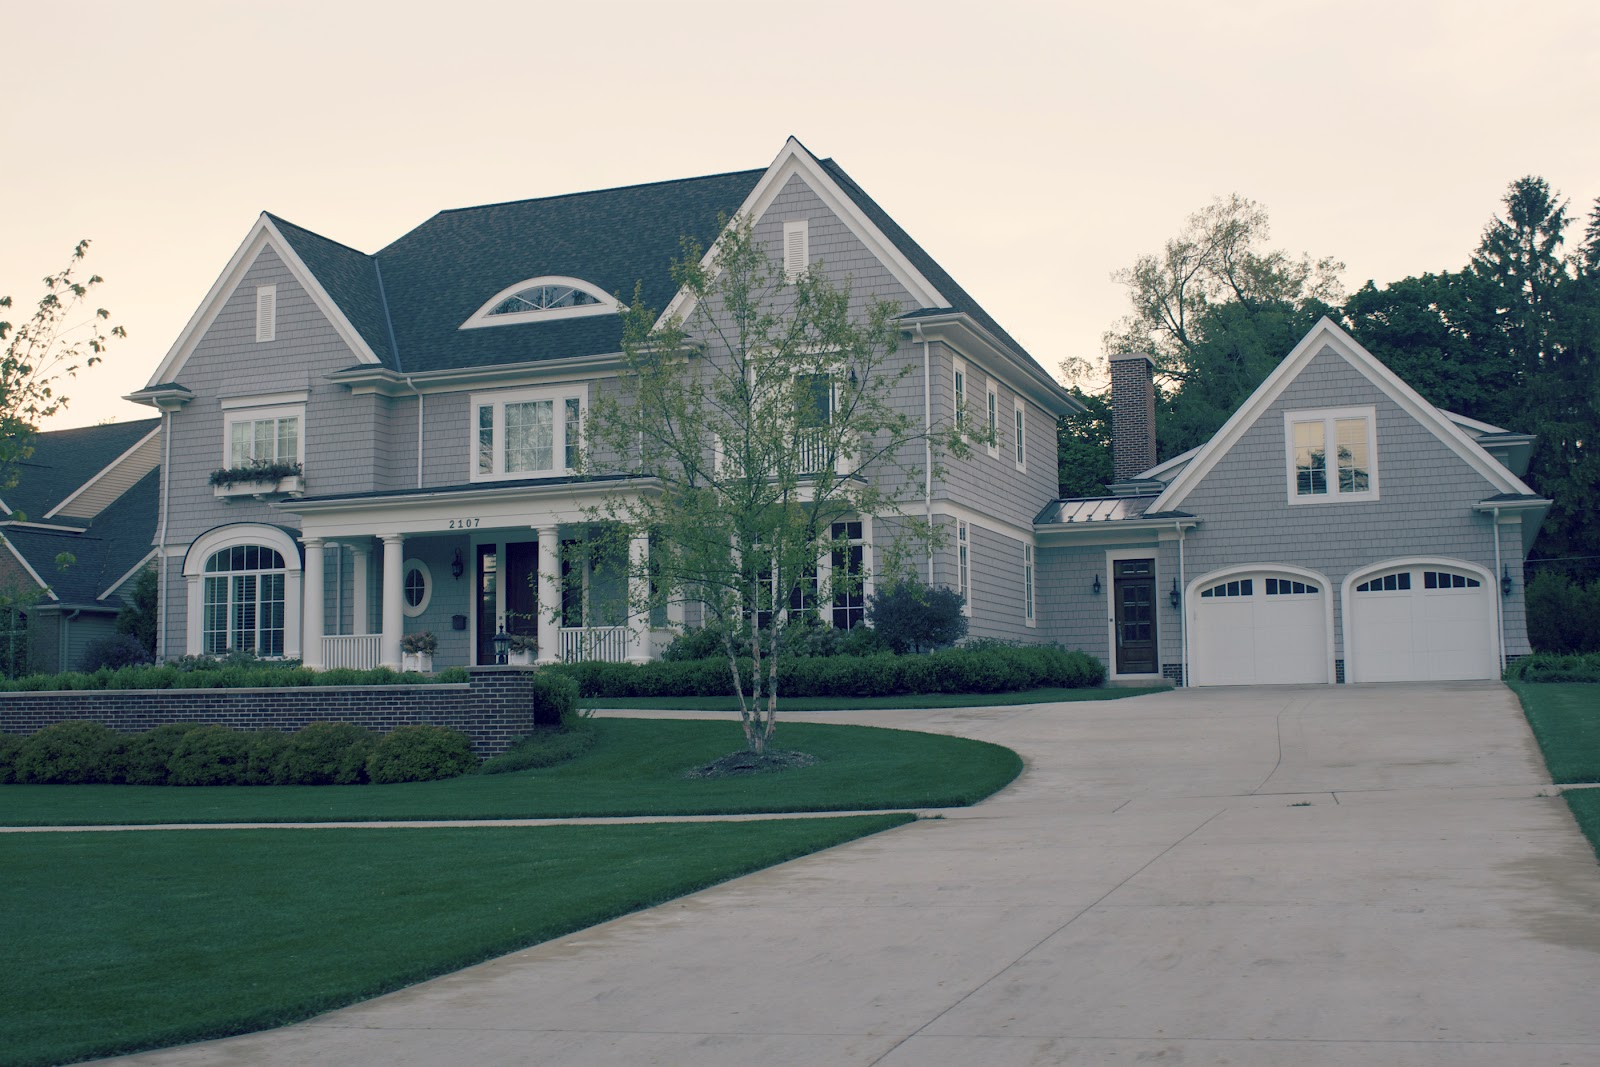 Cool Garage Doors on Pool House Plans With Garage